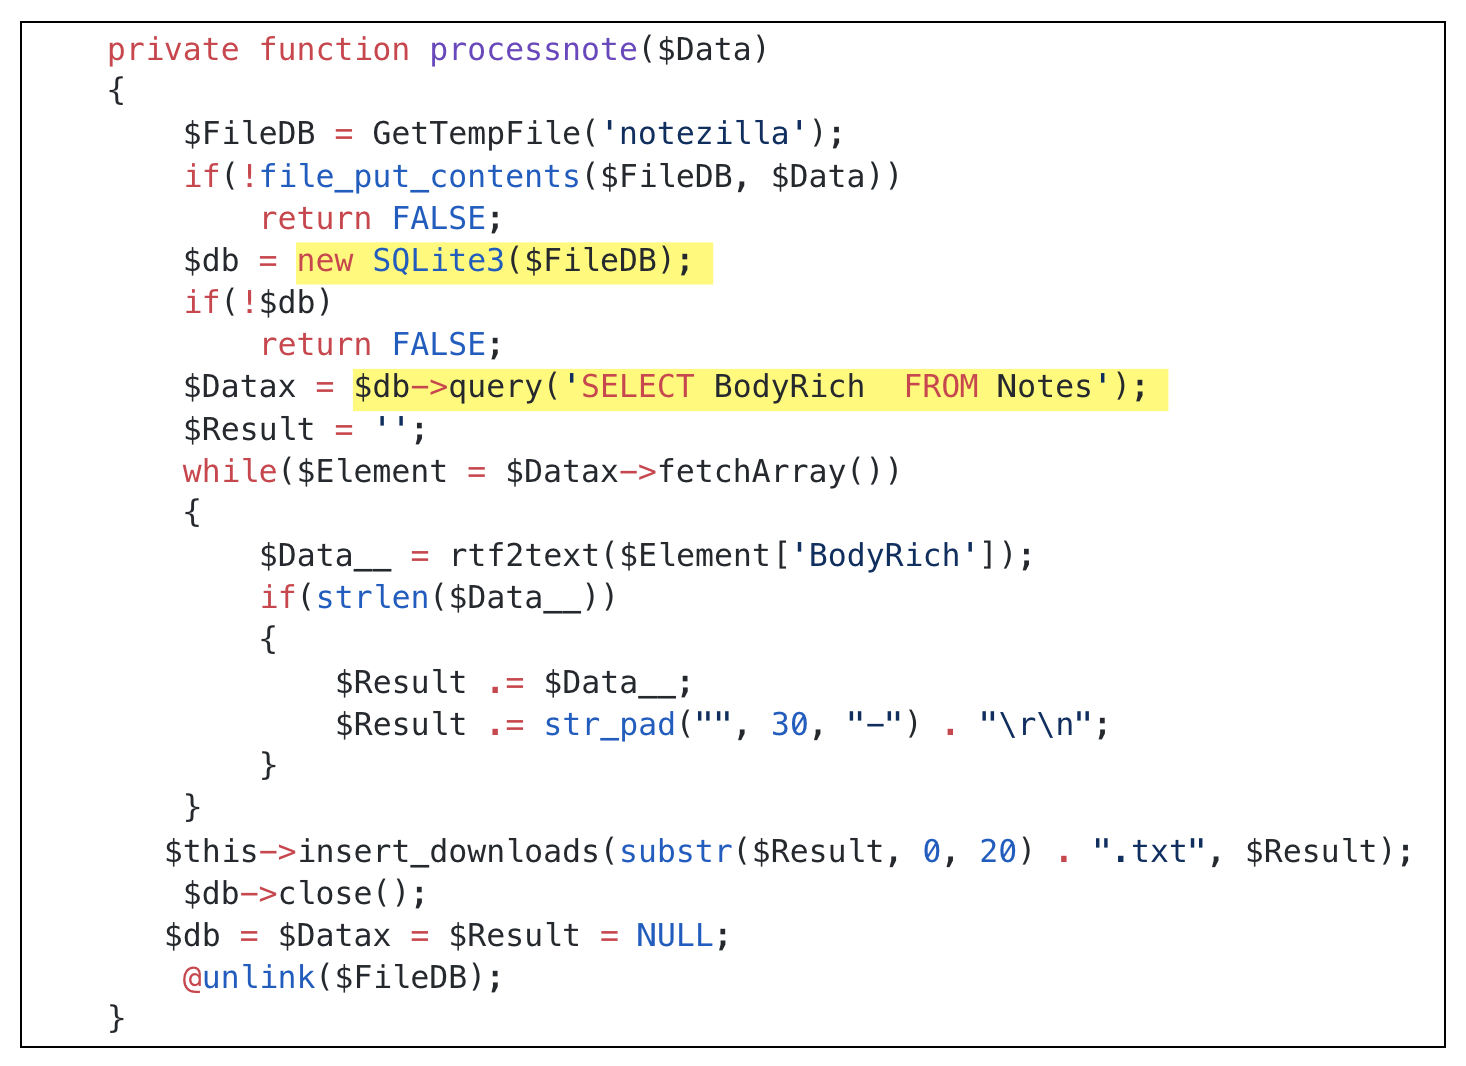 Check Point Research discovers vulnerabilities in SQLite that allow hacking an iPhone